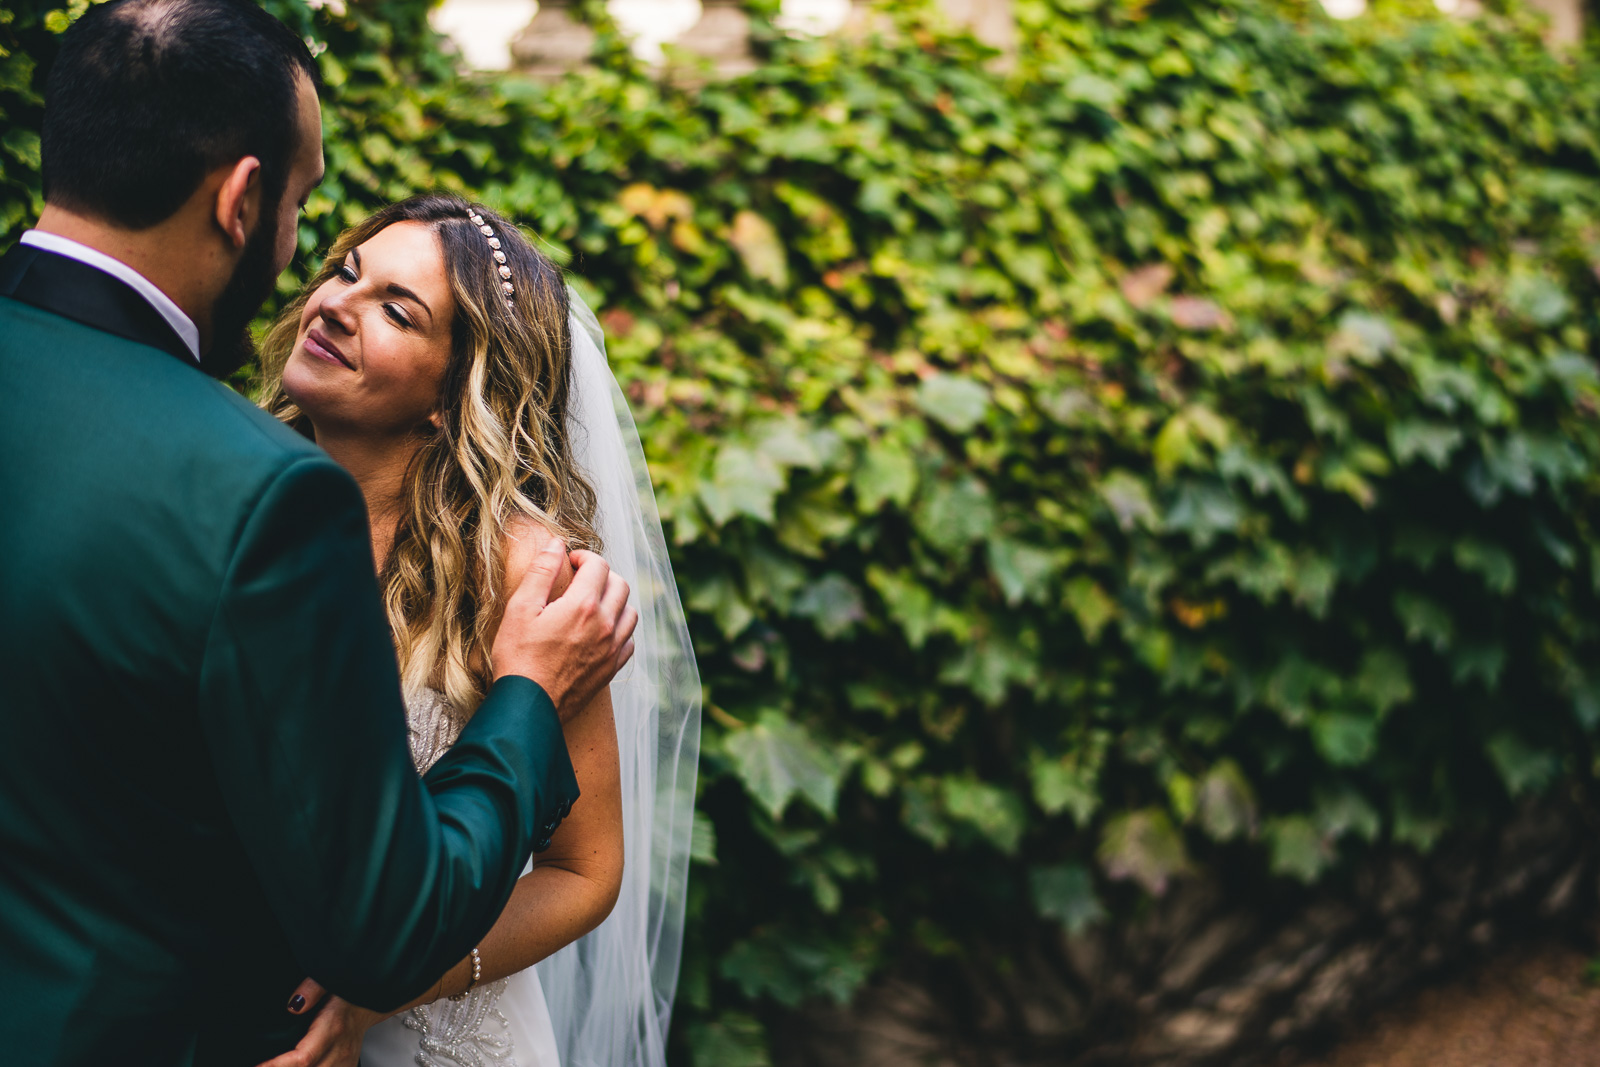 107 chicago wedding photographer best portraits during weddings review - 2018 in Review // My Favorite Chicago Wedding Photography Portraits